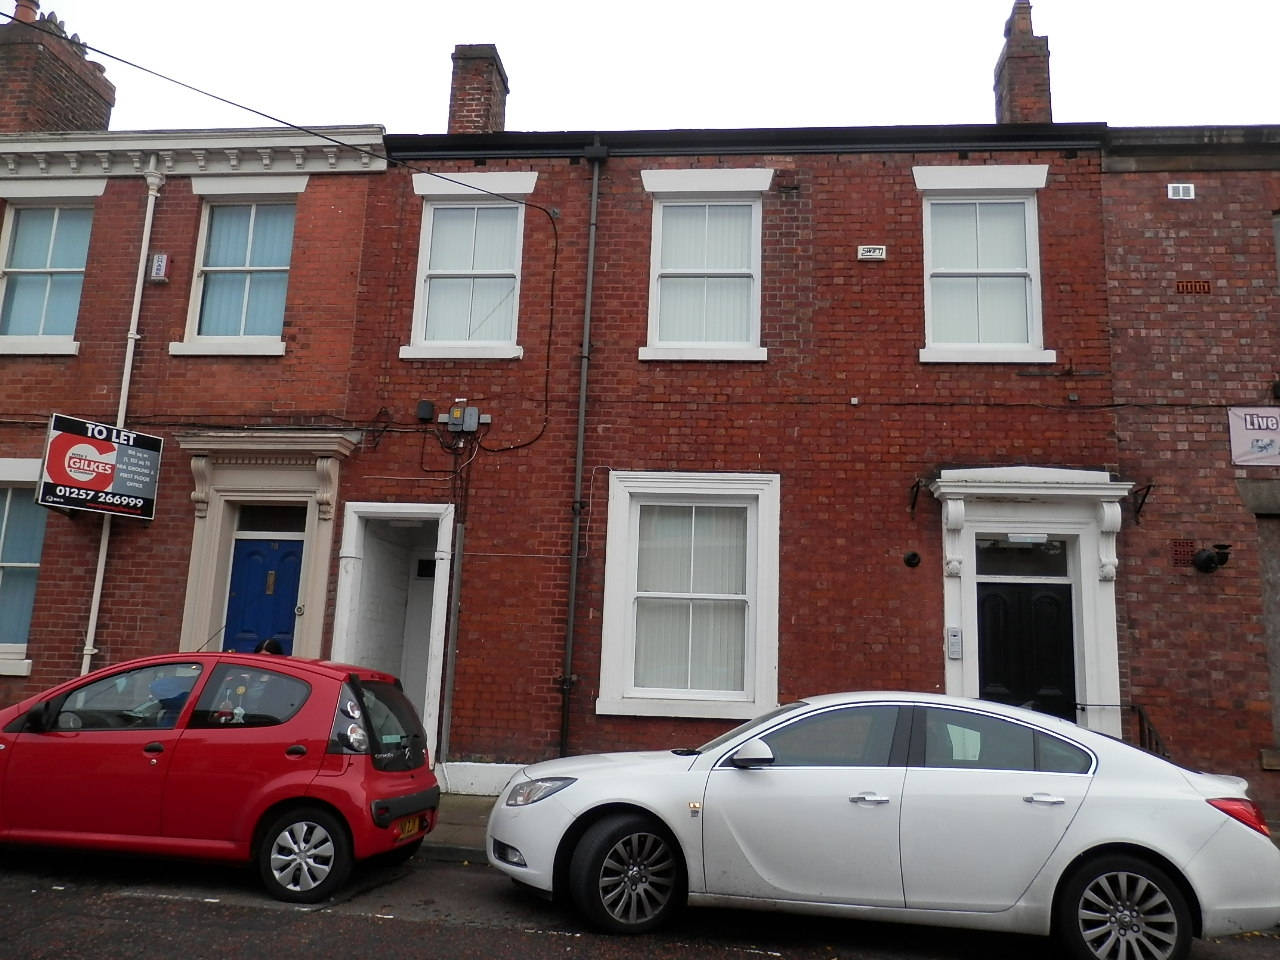 1 bedroom apartment flat/apartment in Chorley - Photograph 1.